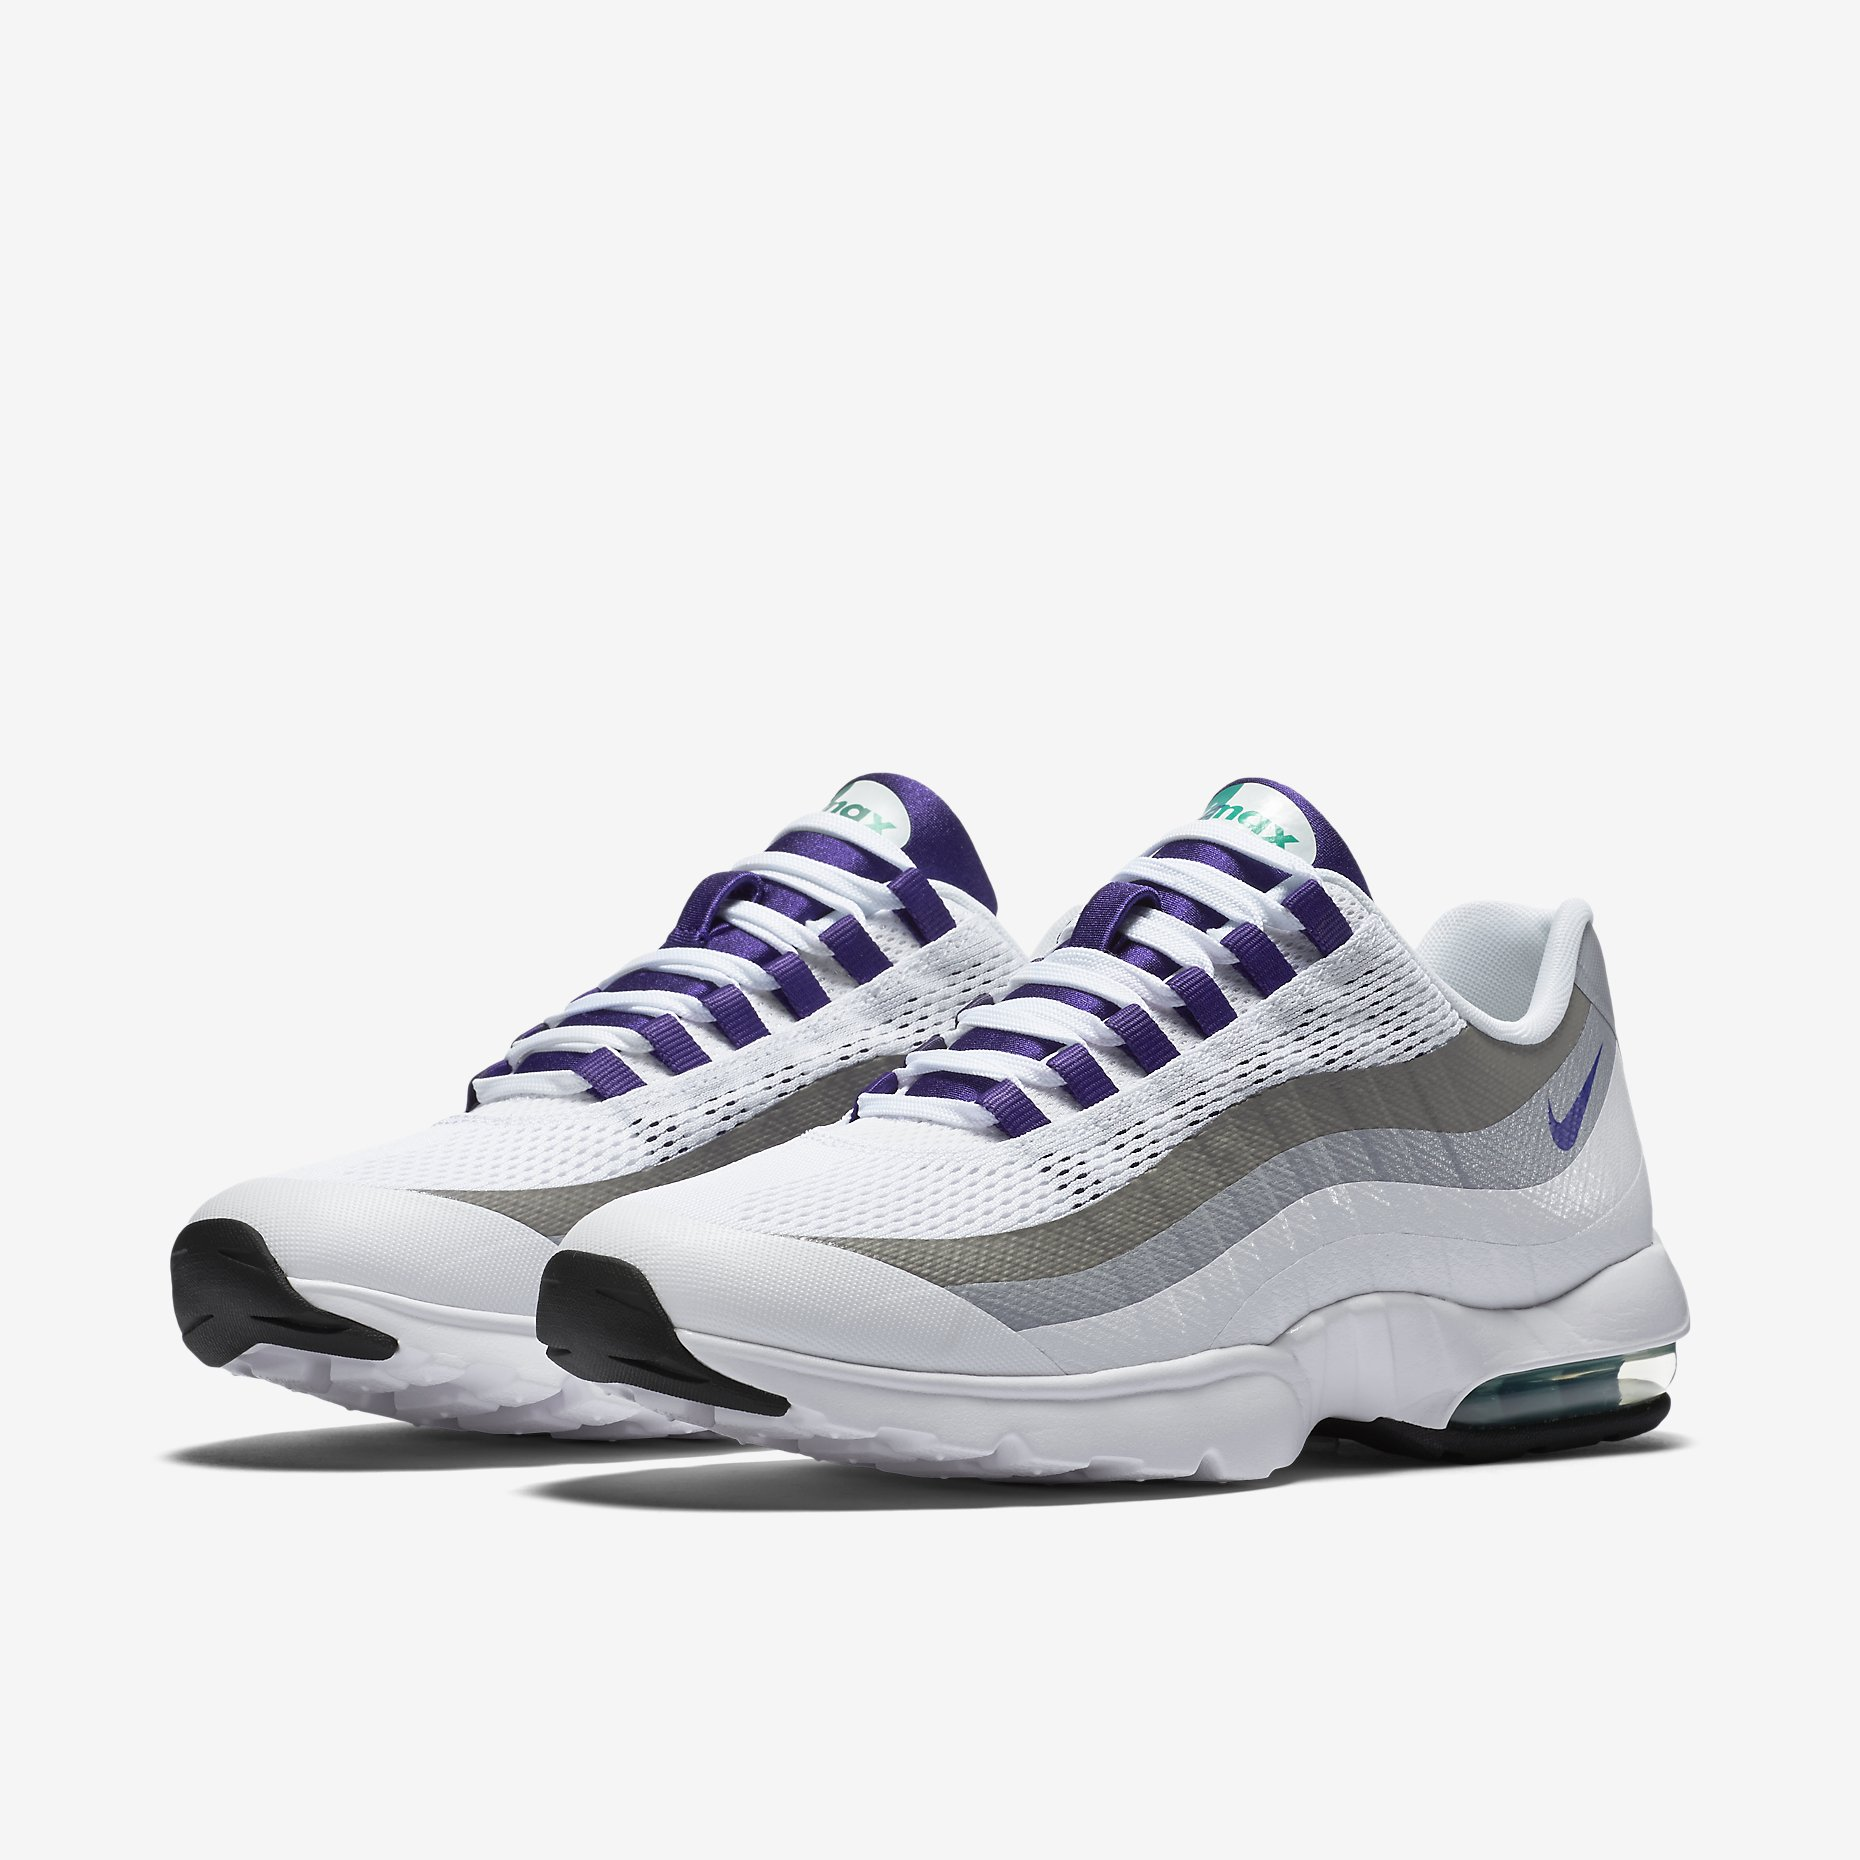 low priced 9cf40 bd367 basket nike blanche air max 95